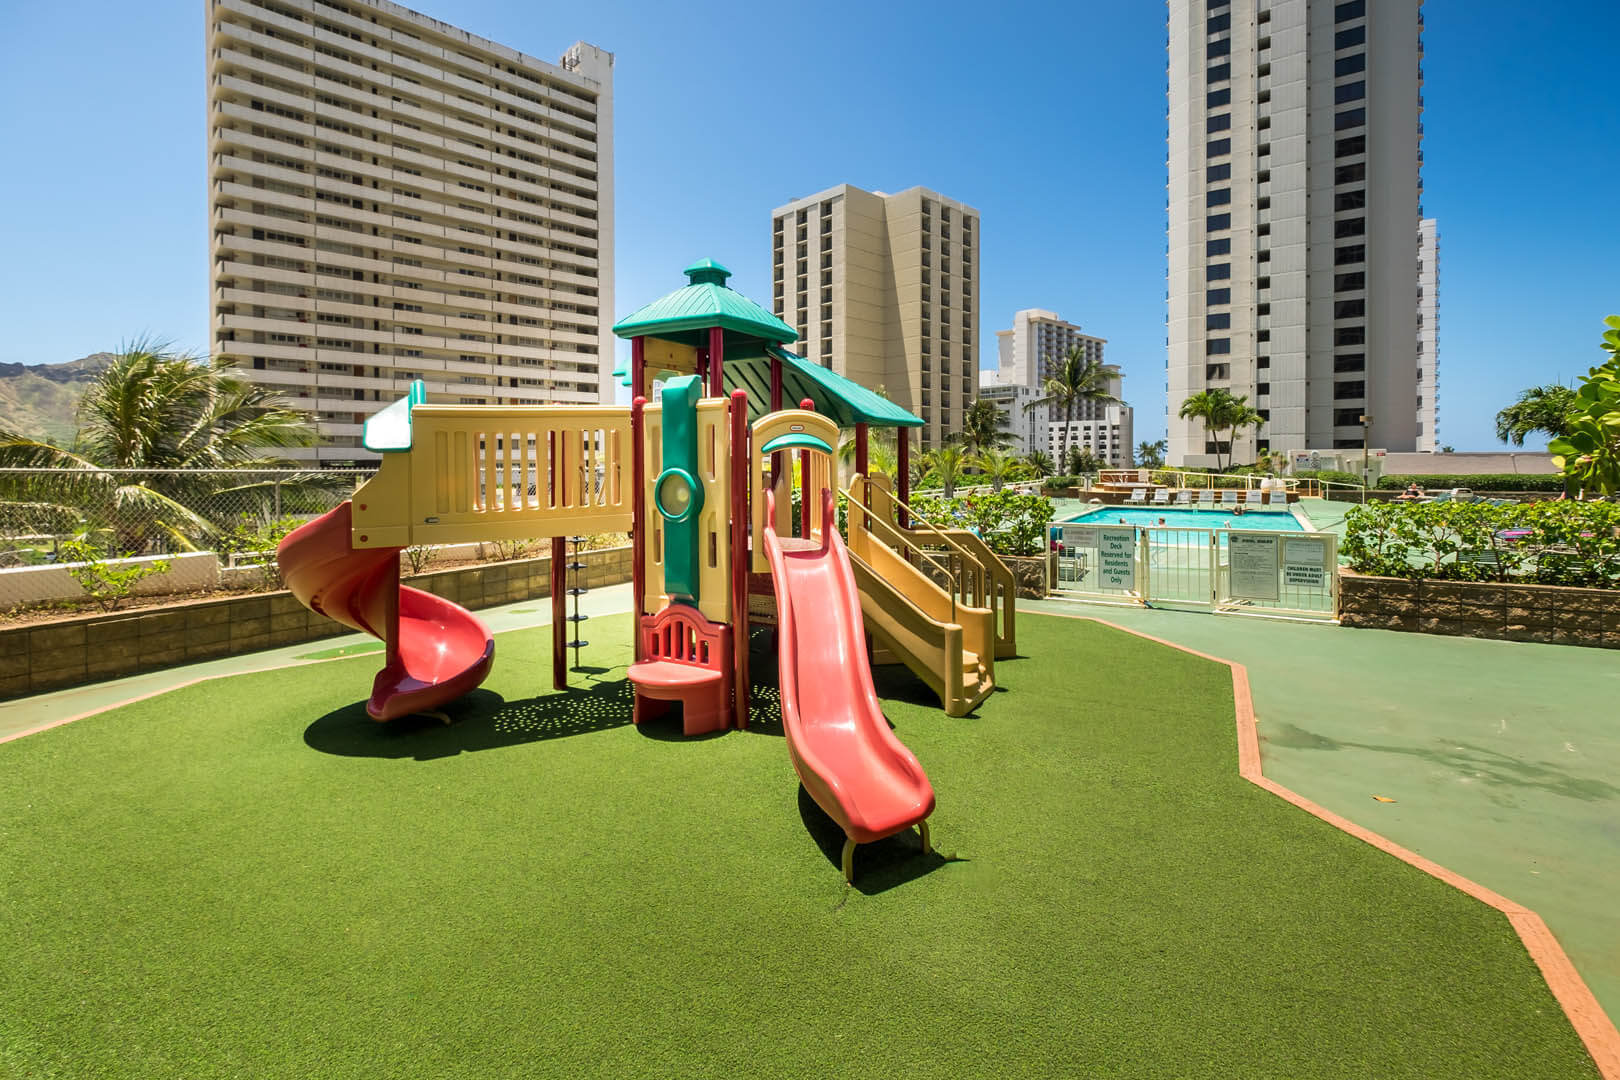 A colorful playground at VRI's Kuleana Club in Lahaina, Maui.